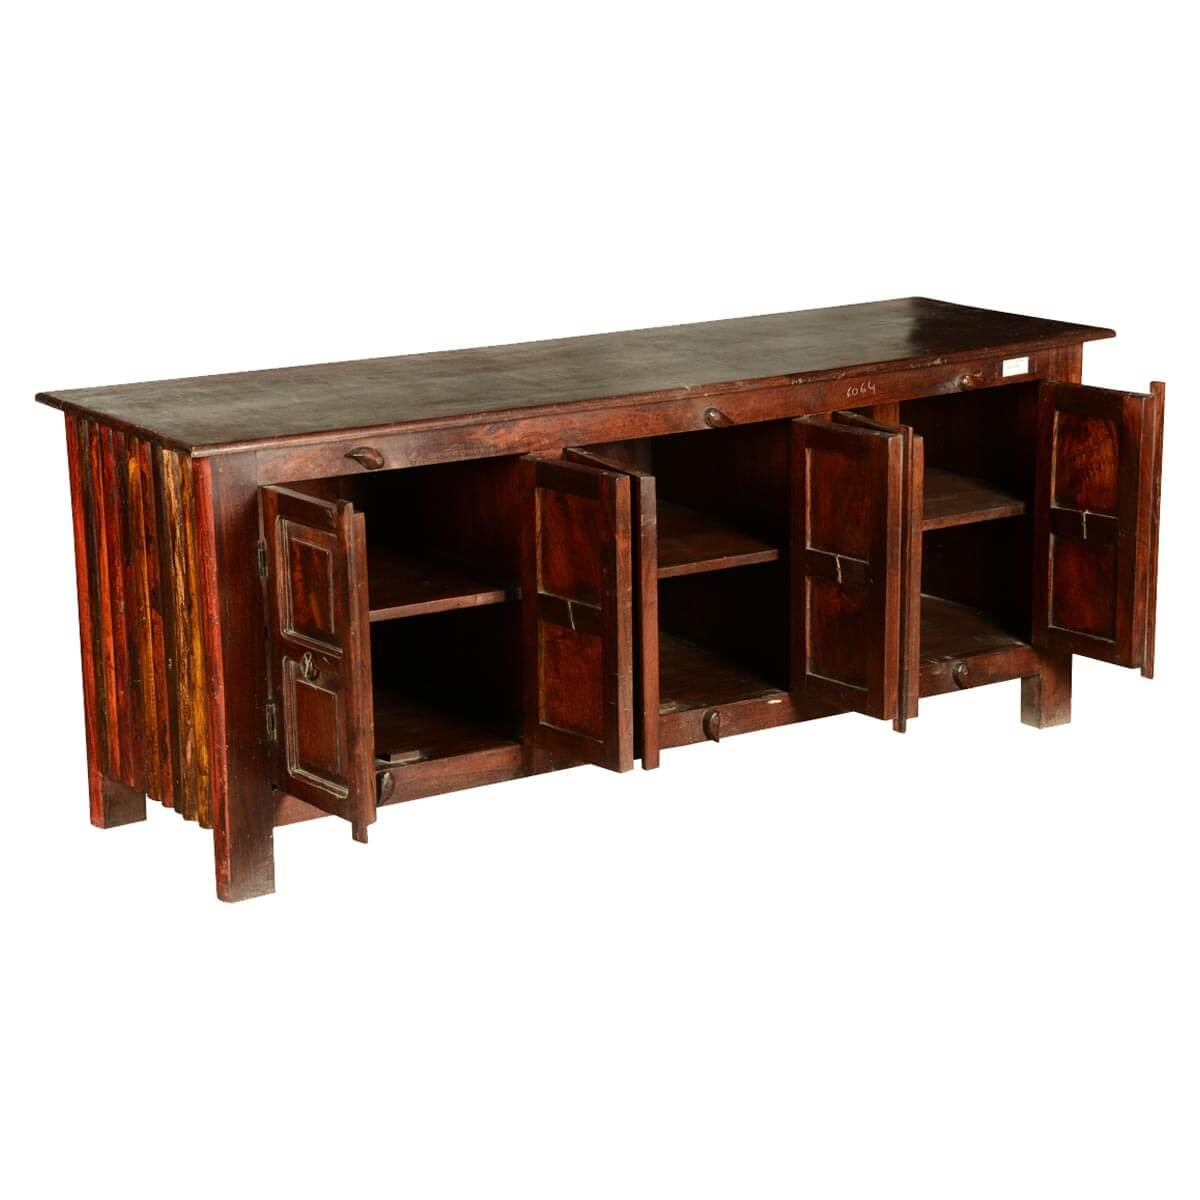 shaker rustic reclaimed wood 64 tv stand media console. Black Bedroom Furniture Sets. Home Design Ideas